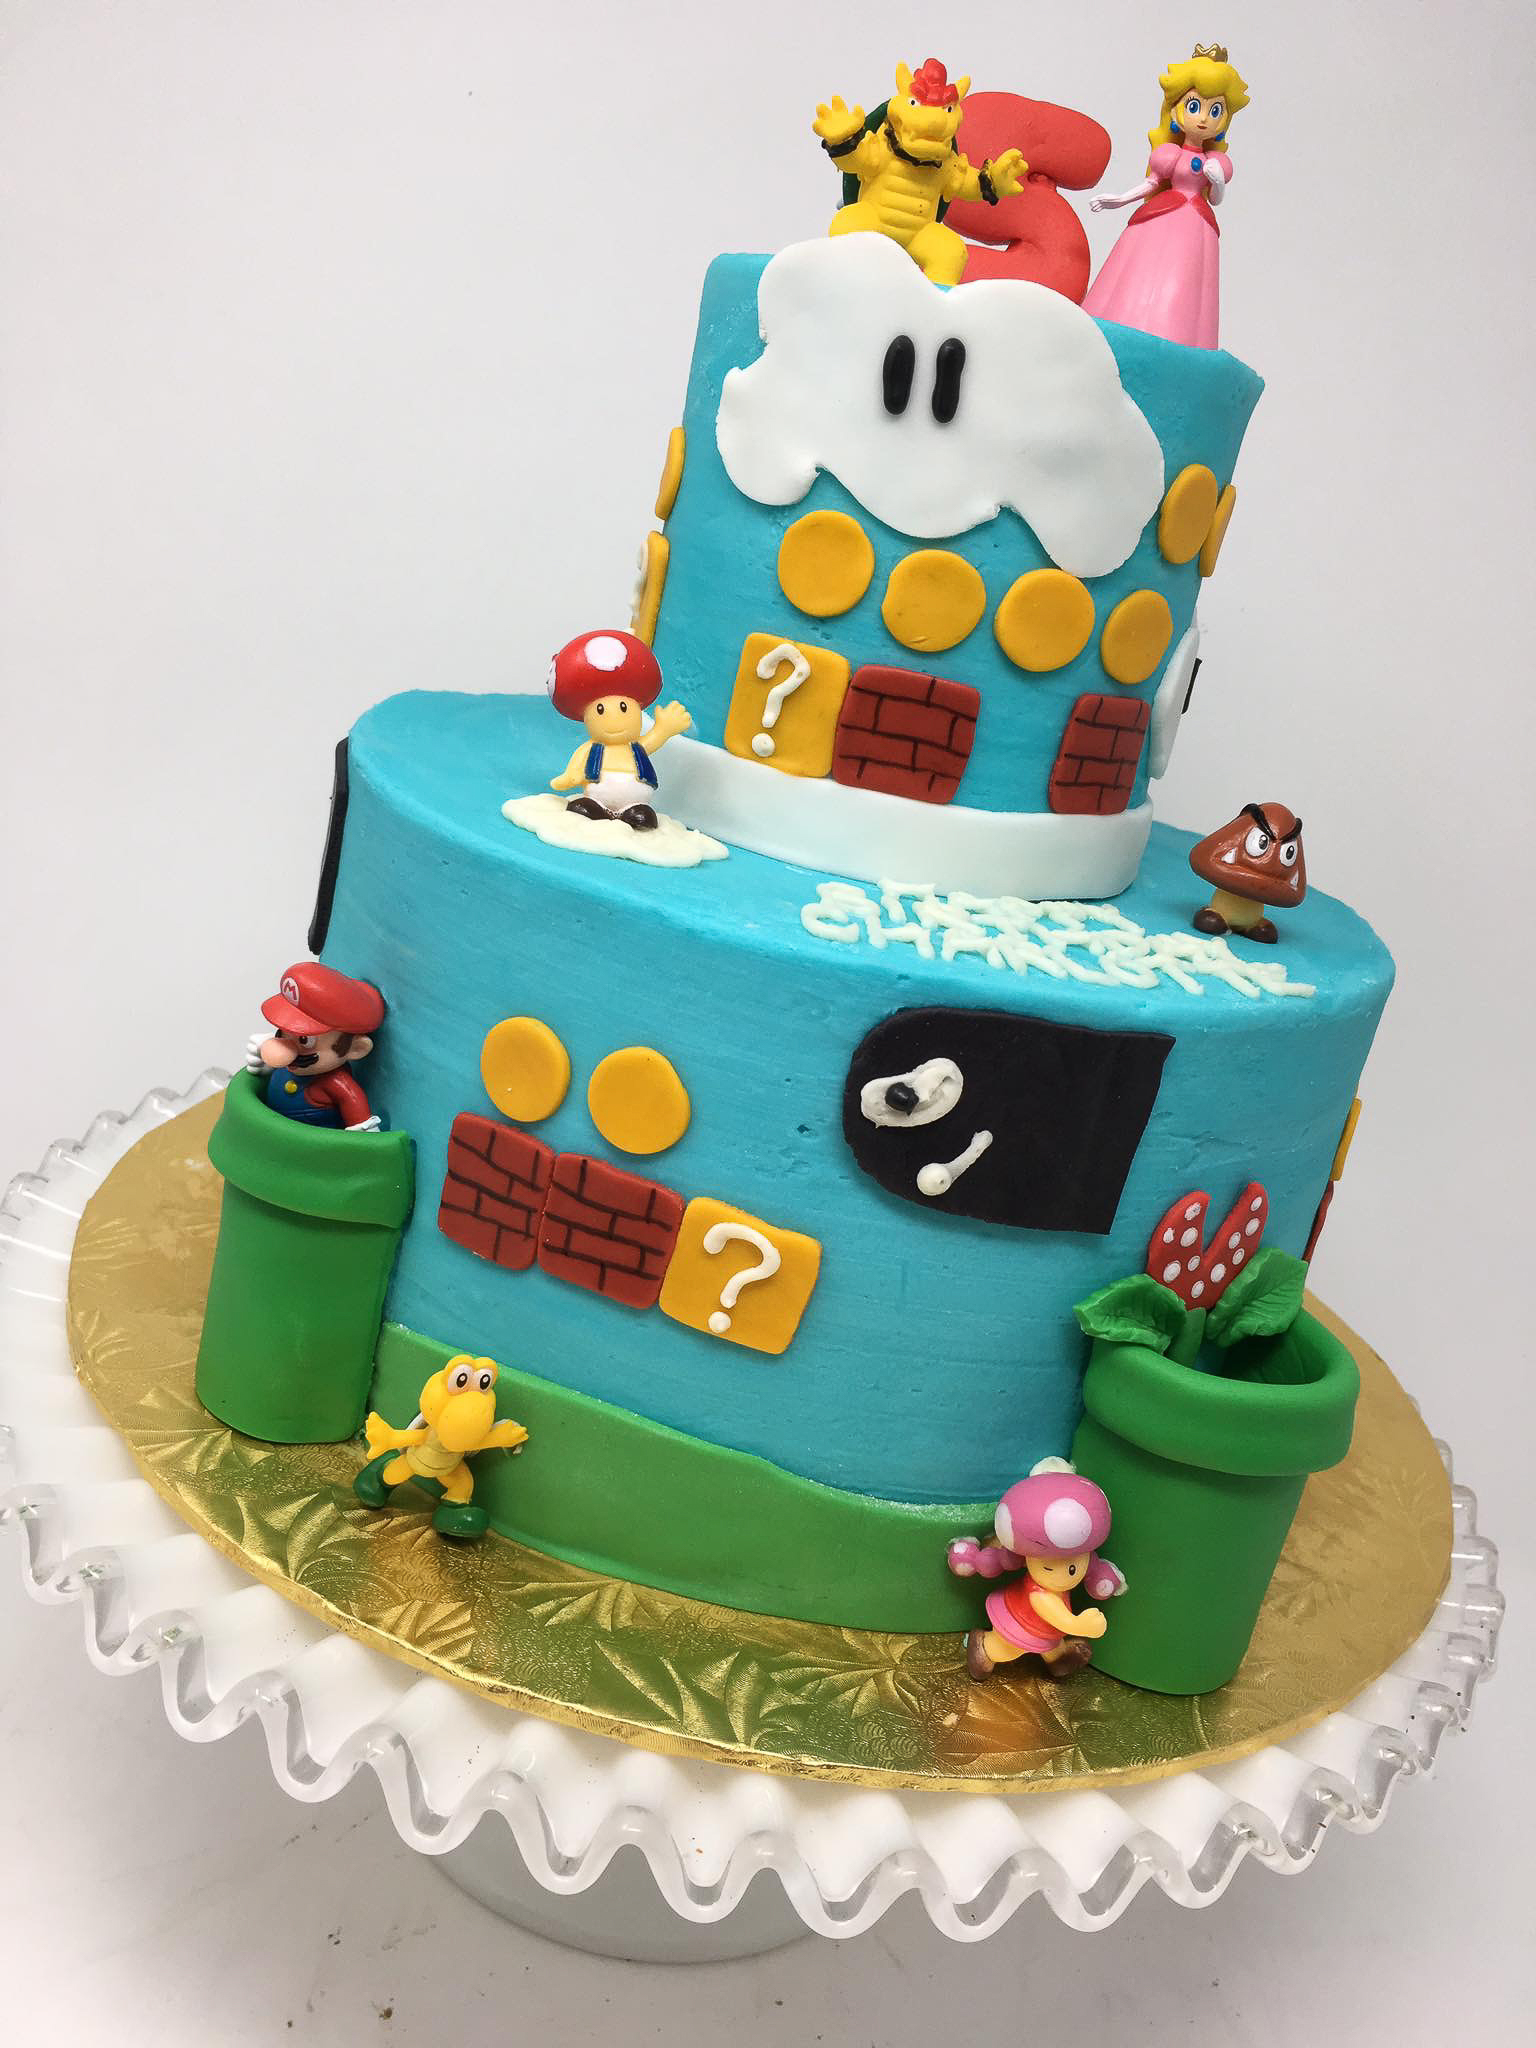 Mario Bros. cake / Image courtesy of Oliver's Desserts // Published: 3.17.18